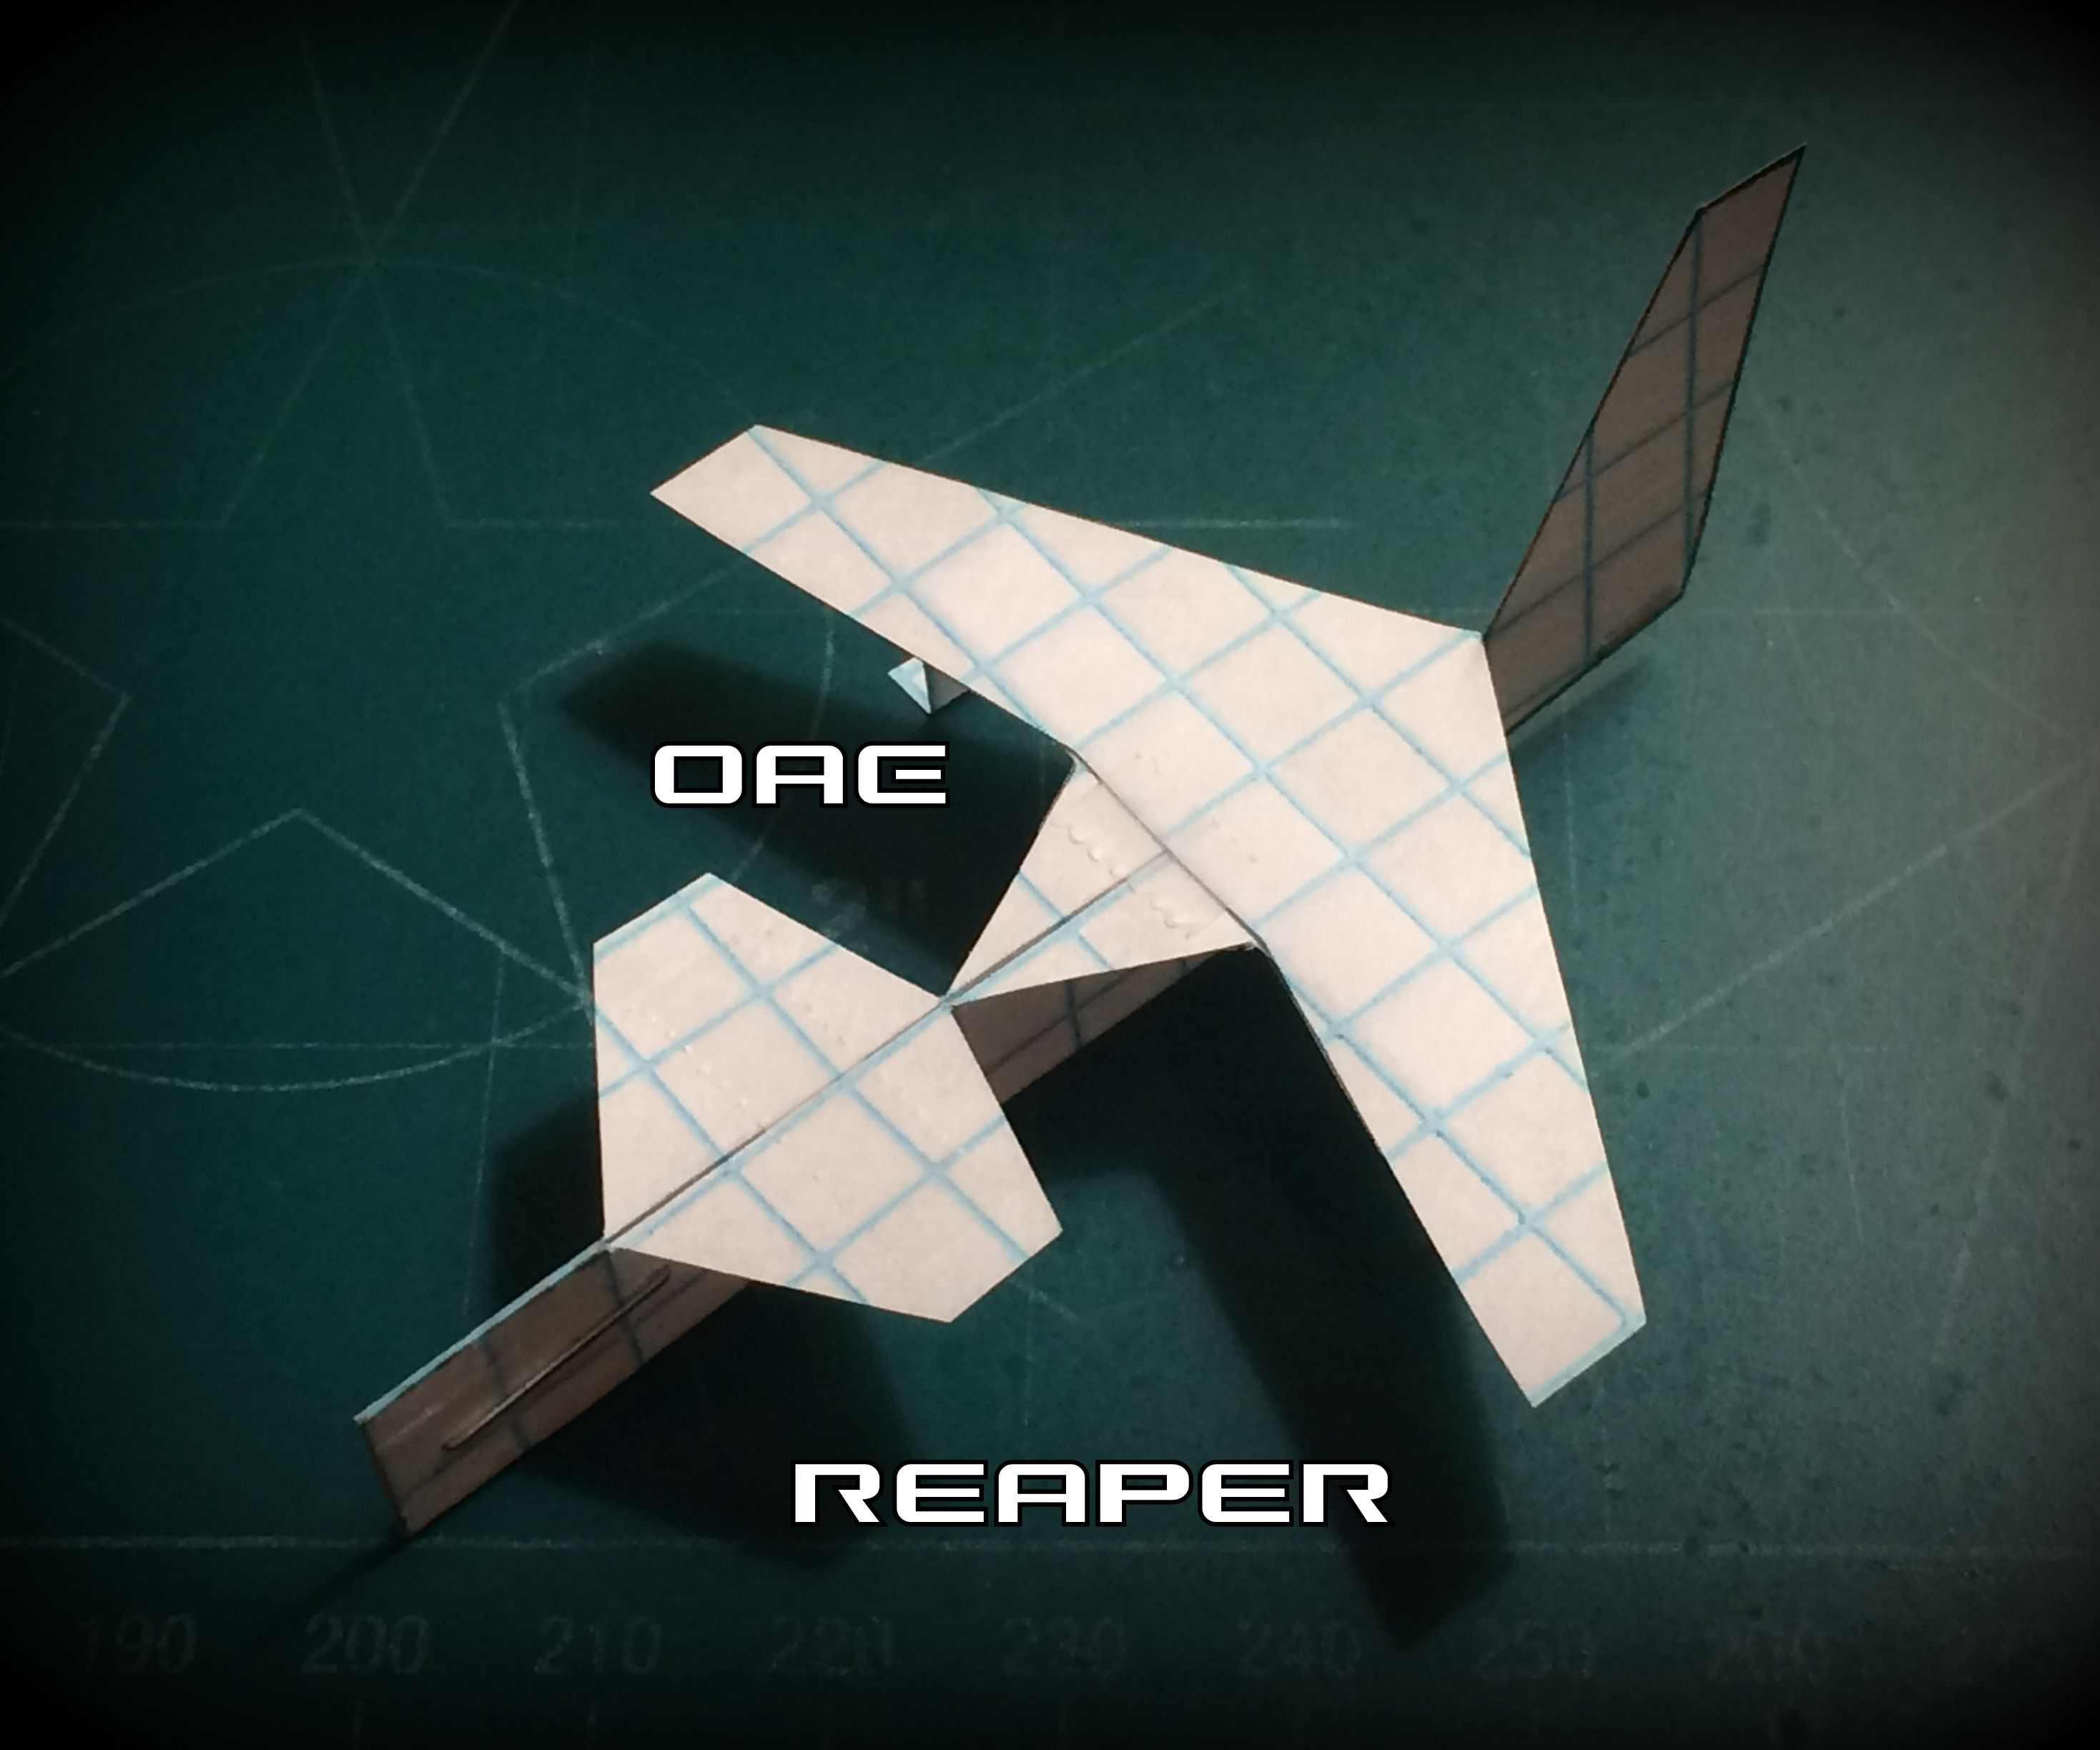 How to Make the Reaper Paper Airplane